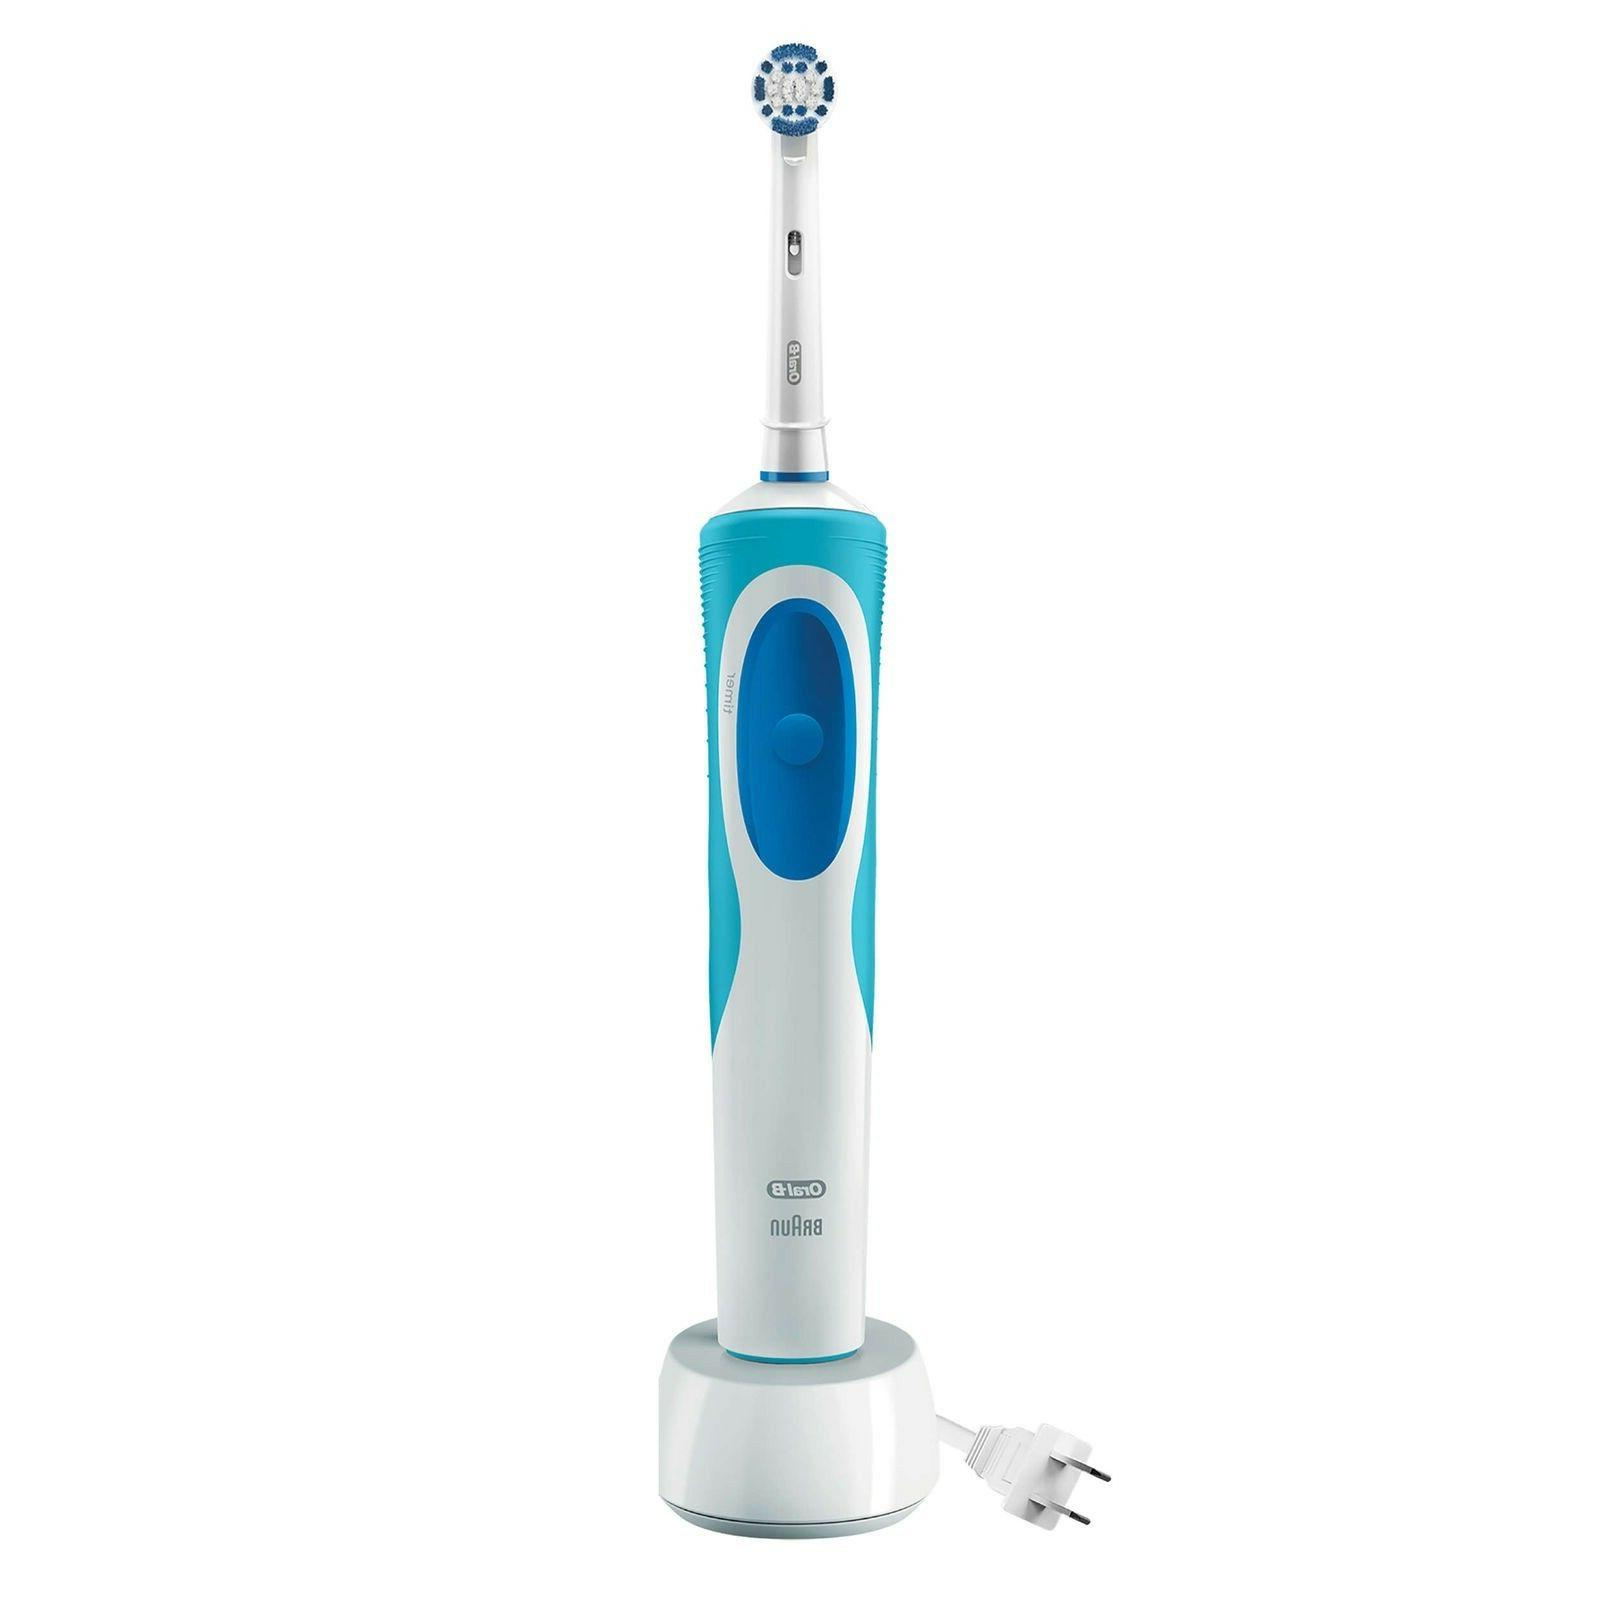 Oral-B Pro Rechargeable Electric Toothbrush by Braun